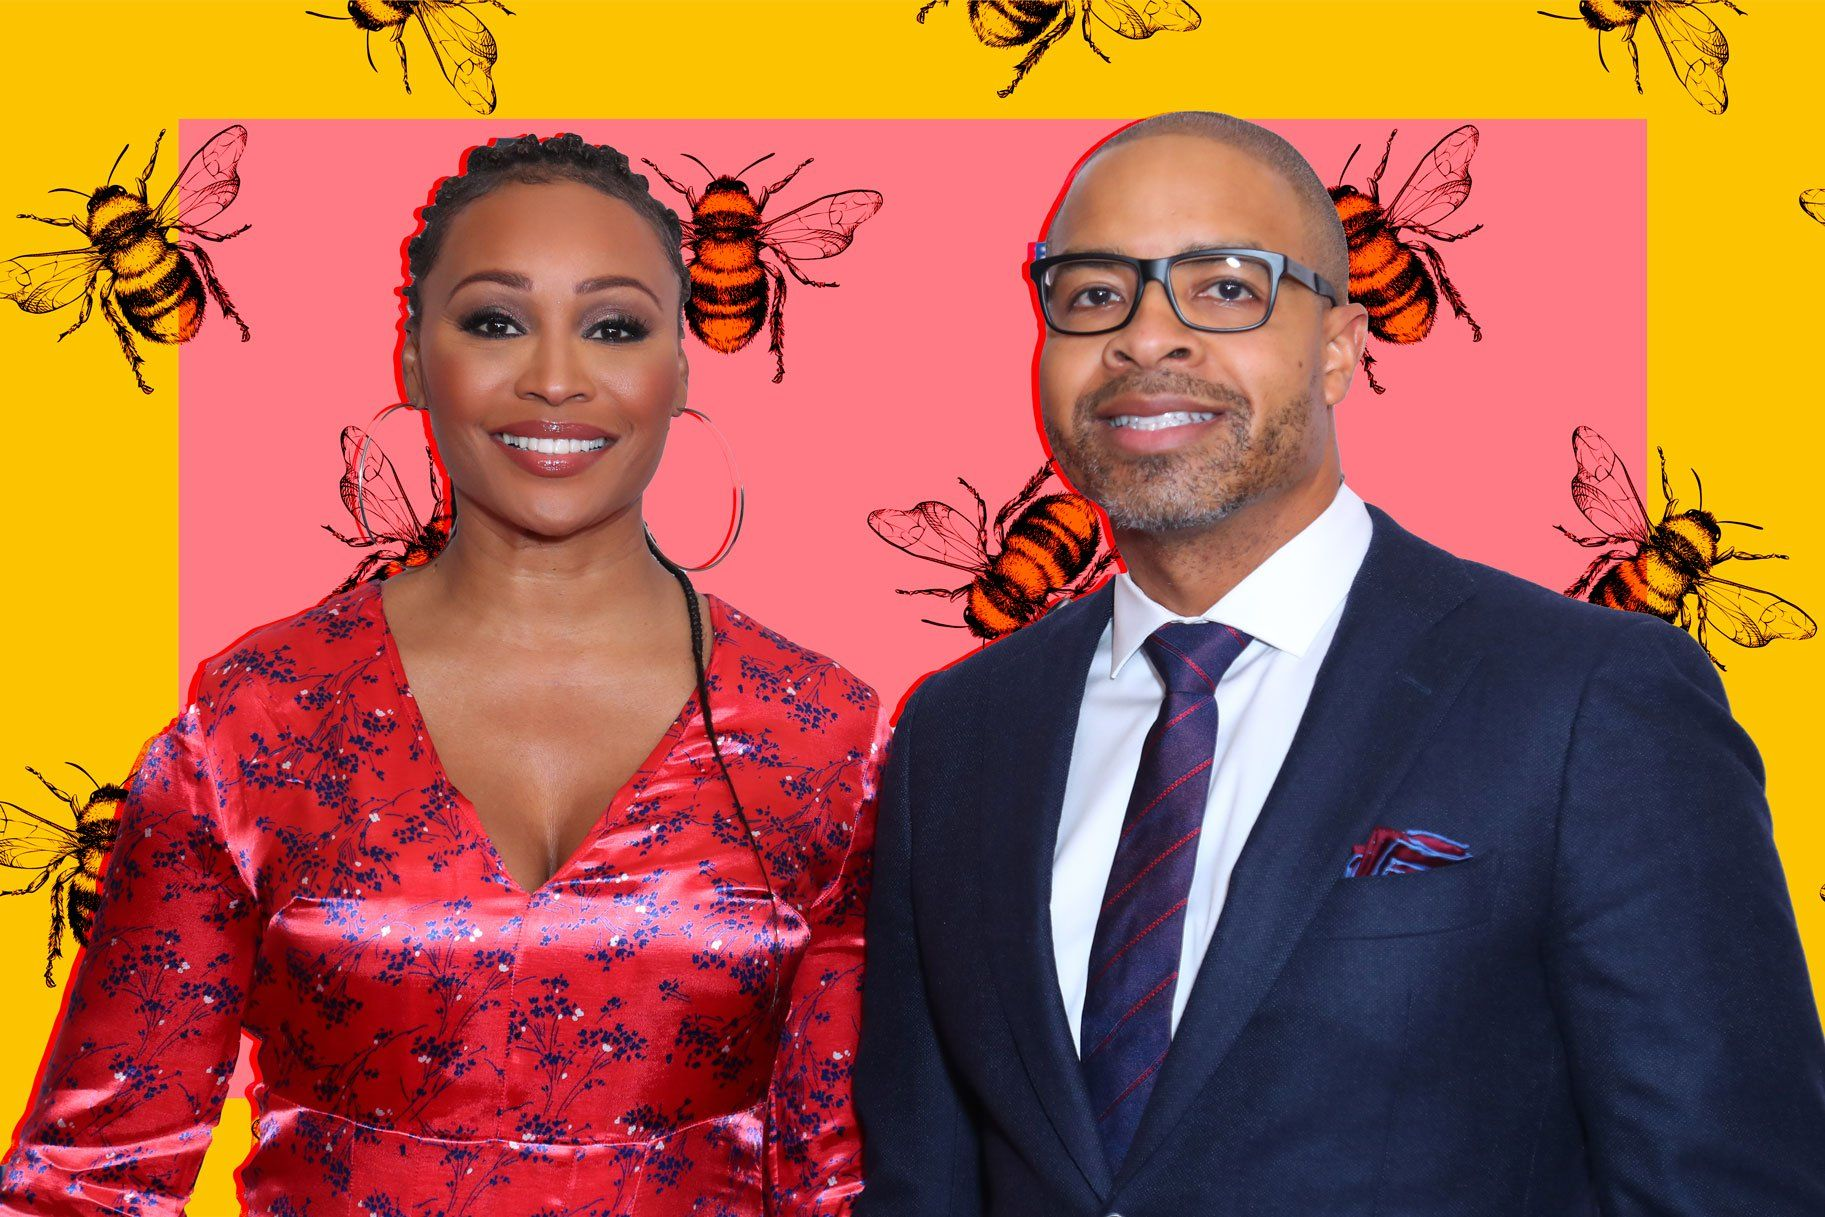 Cynthia Bailey's Latest Photos With Mike Hill Have Fans